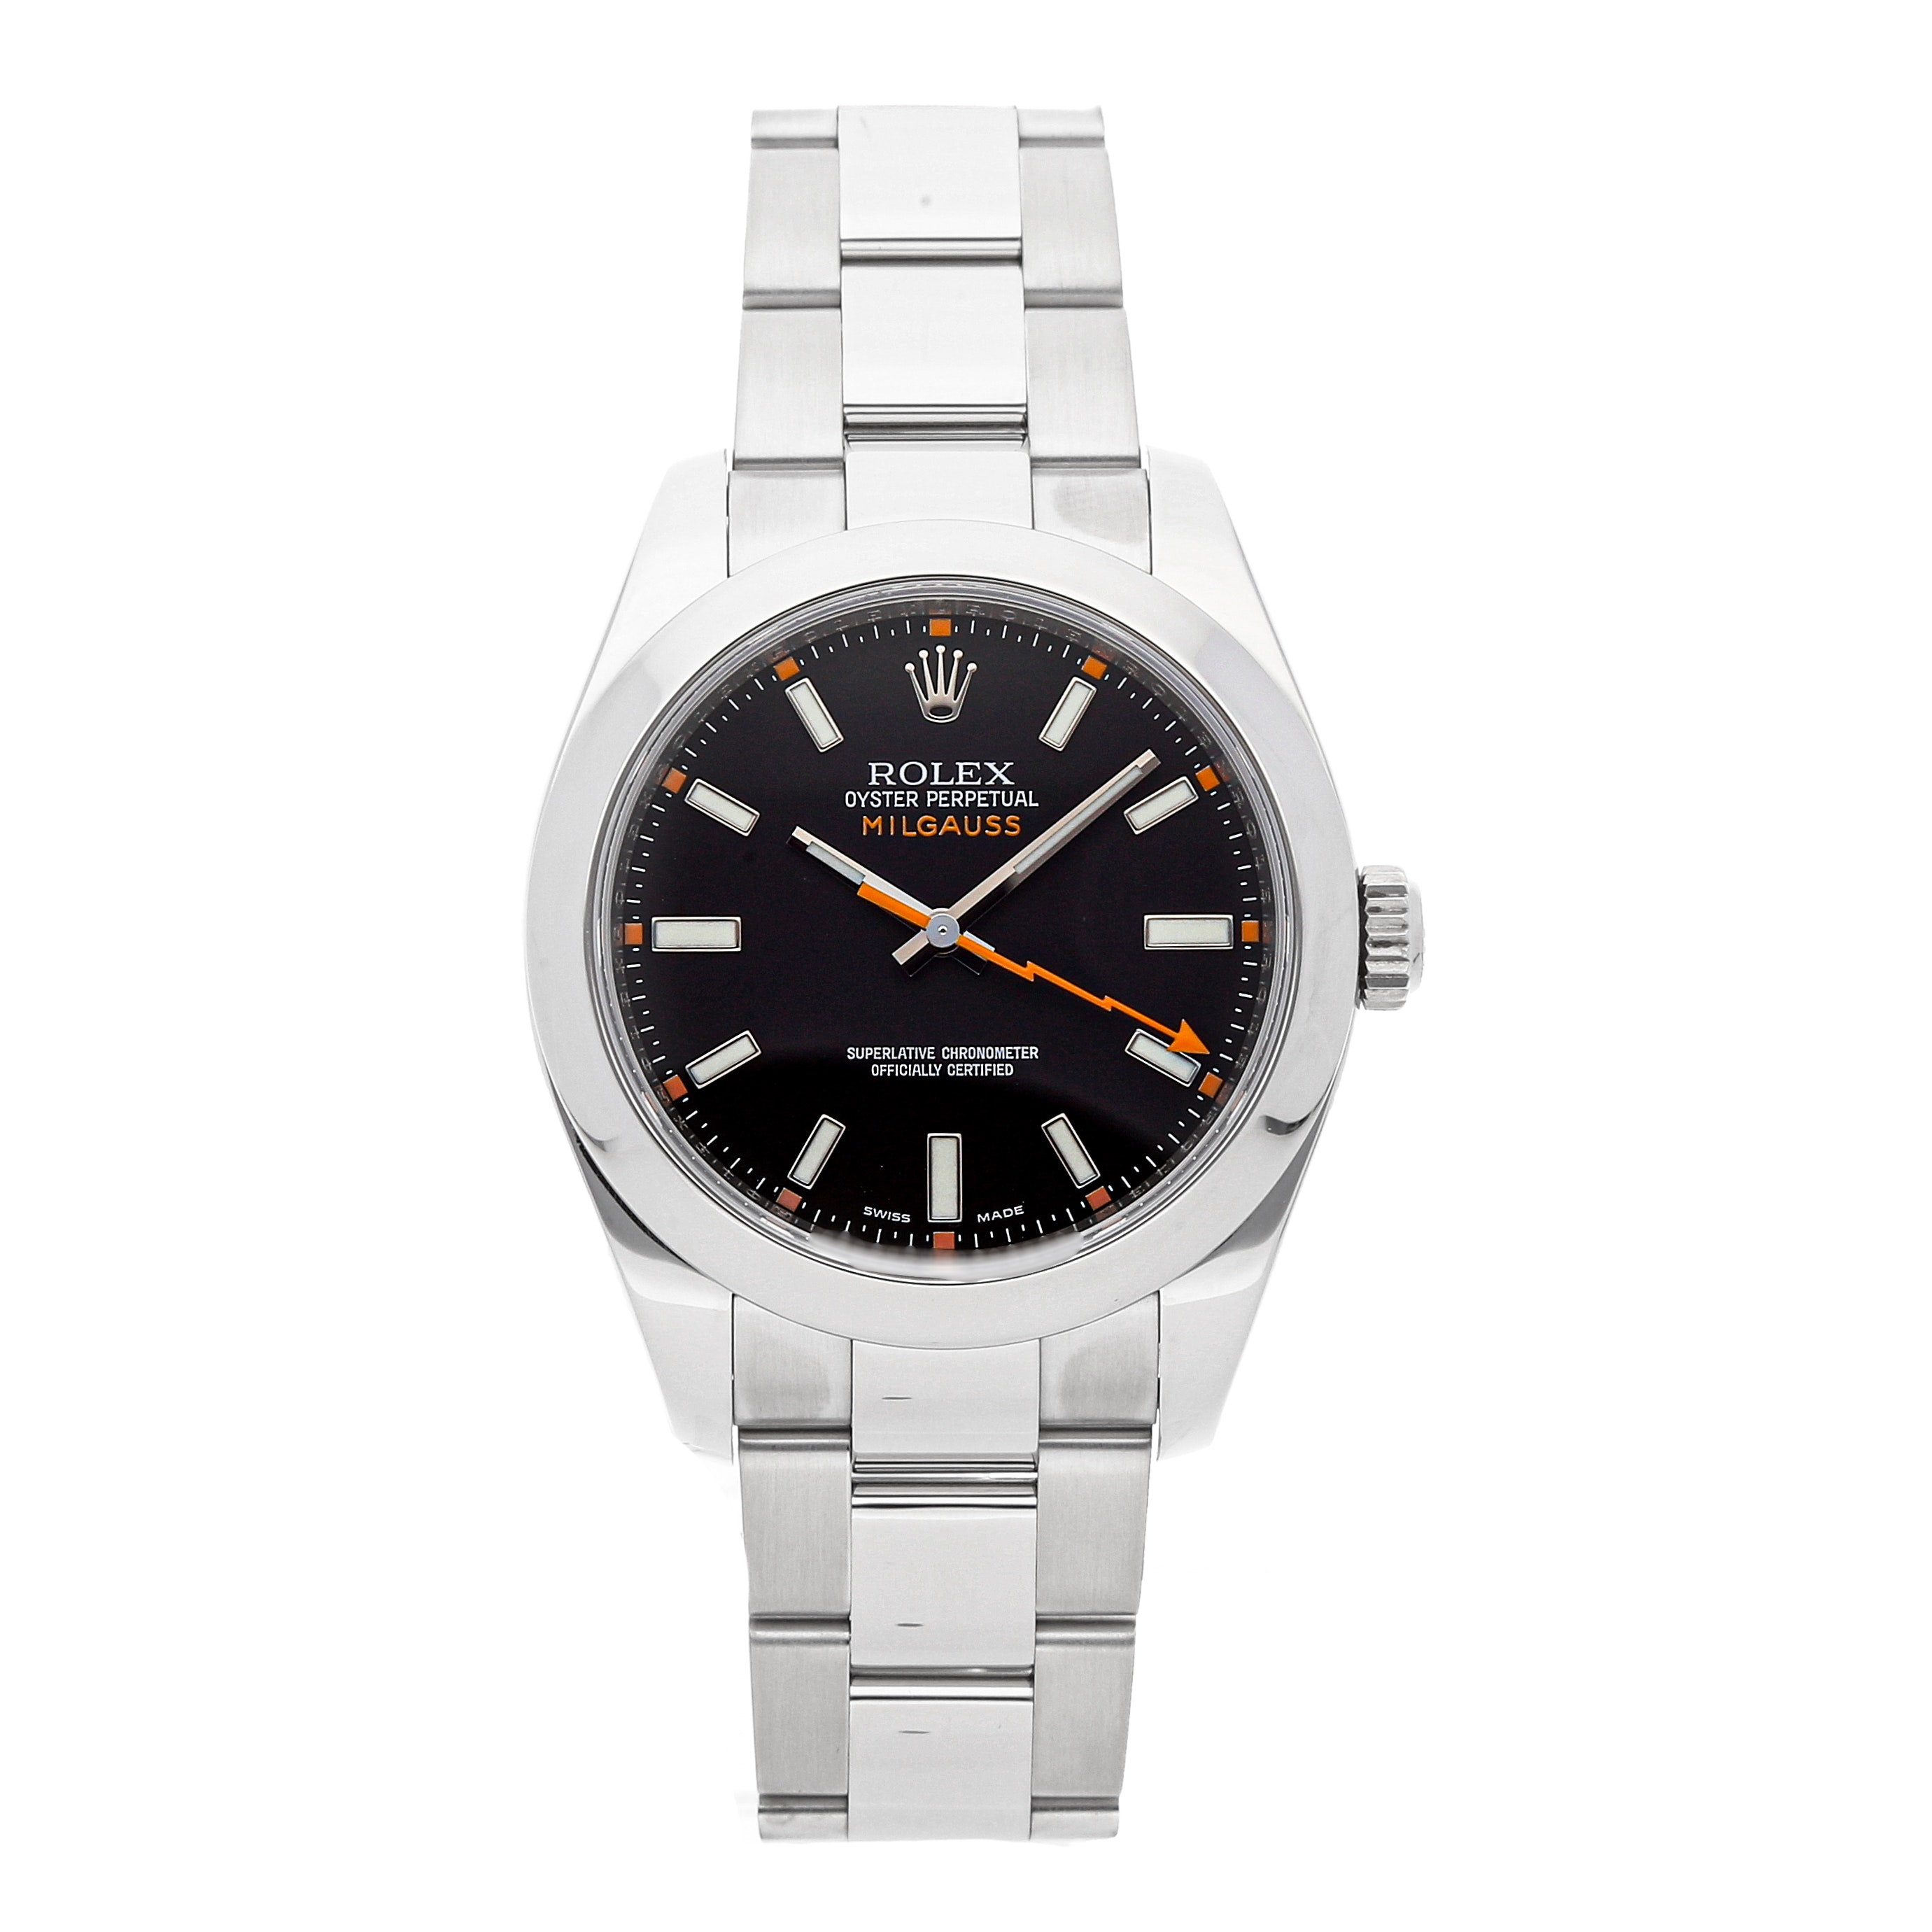 Rolex Milgauss Review The Anti,Magnetic Anti,Rolex